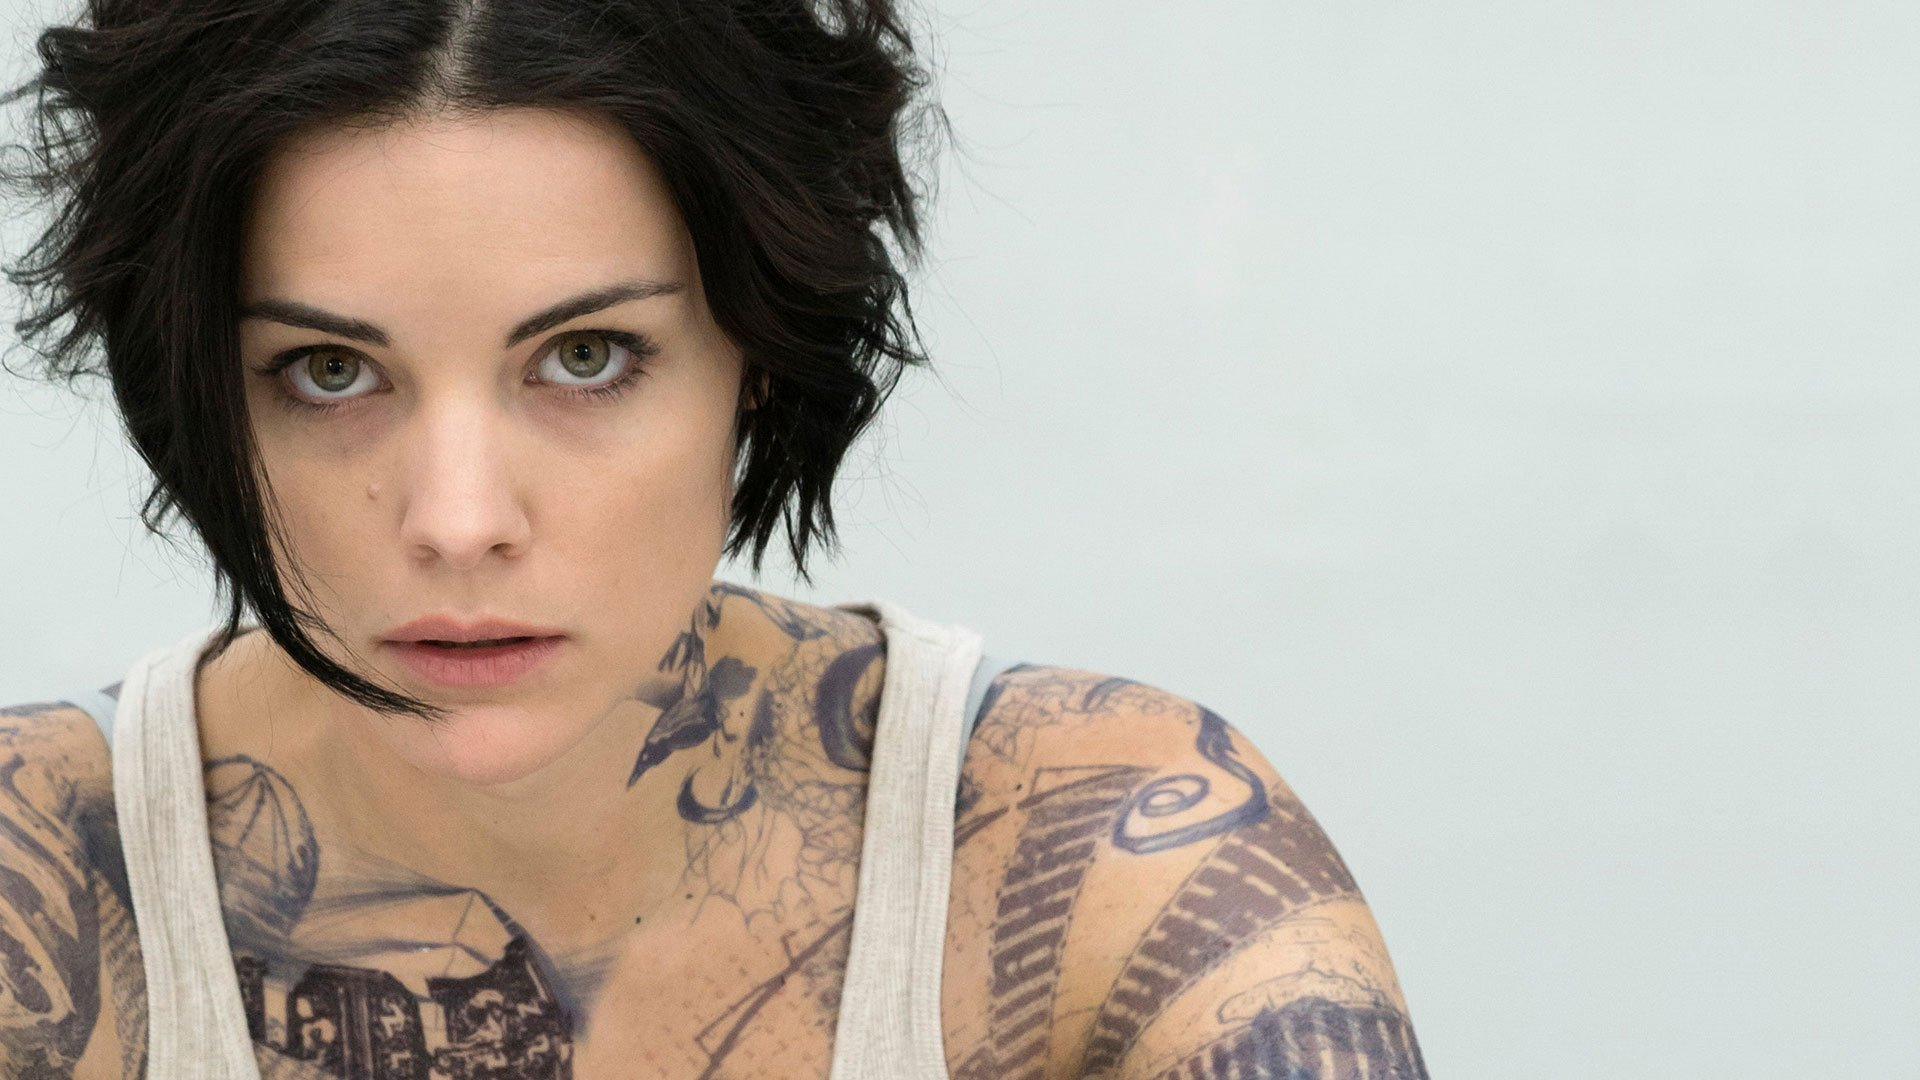 Top 42 Crime Drama And Thriller Shows On Hulu 2019 Edition blindspot